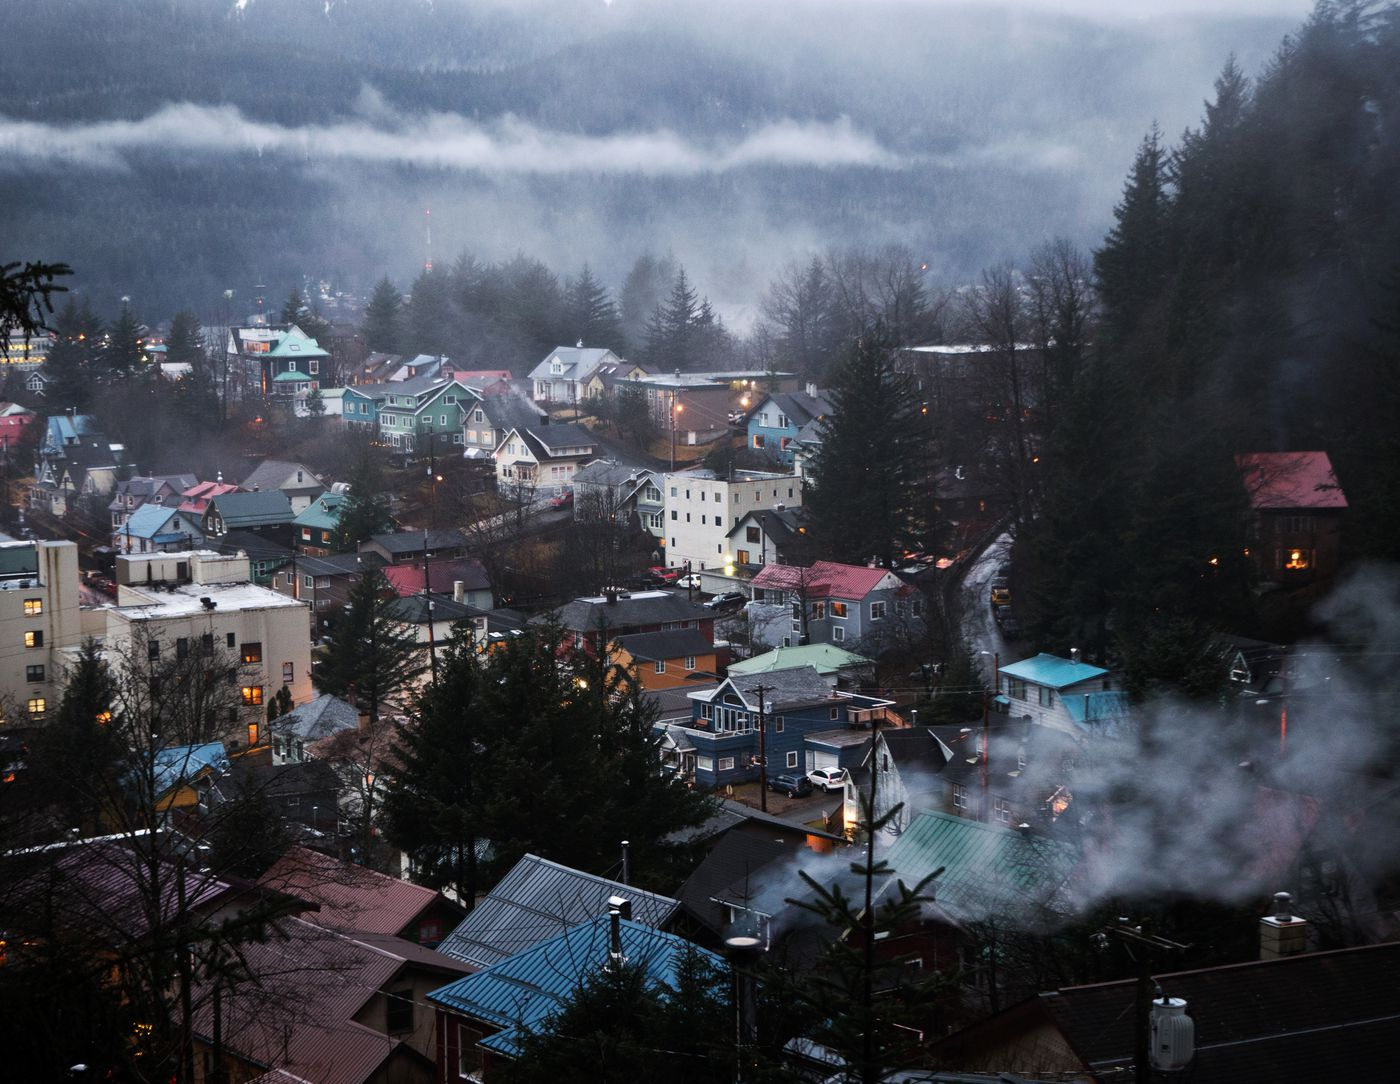 Clouds hang low over a residential area near downtown Juneau on January 17, 2017. (Marc Lester / Alaska Dispatch News)